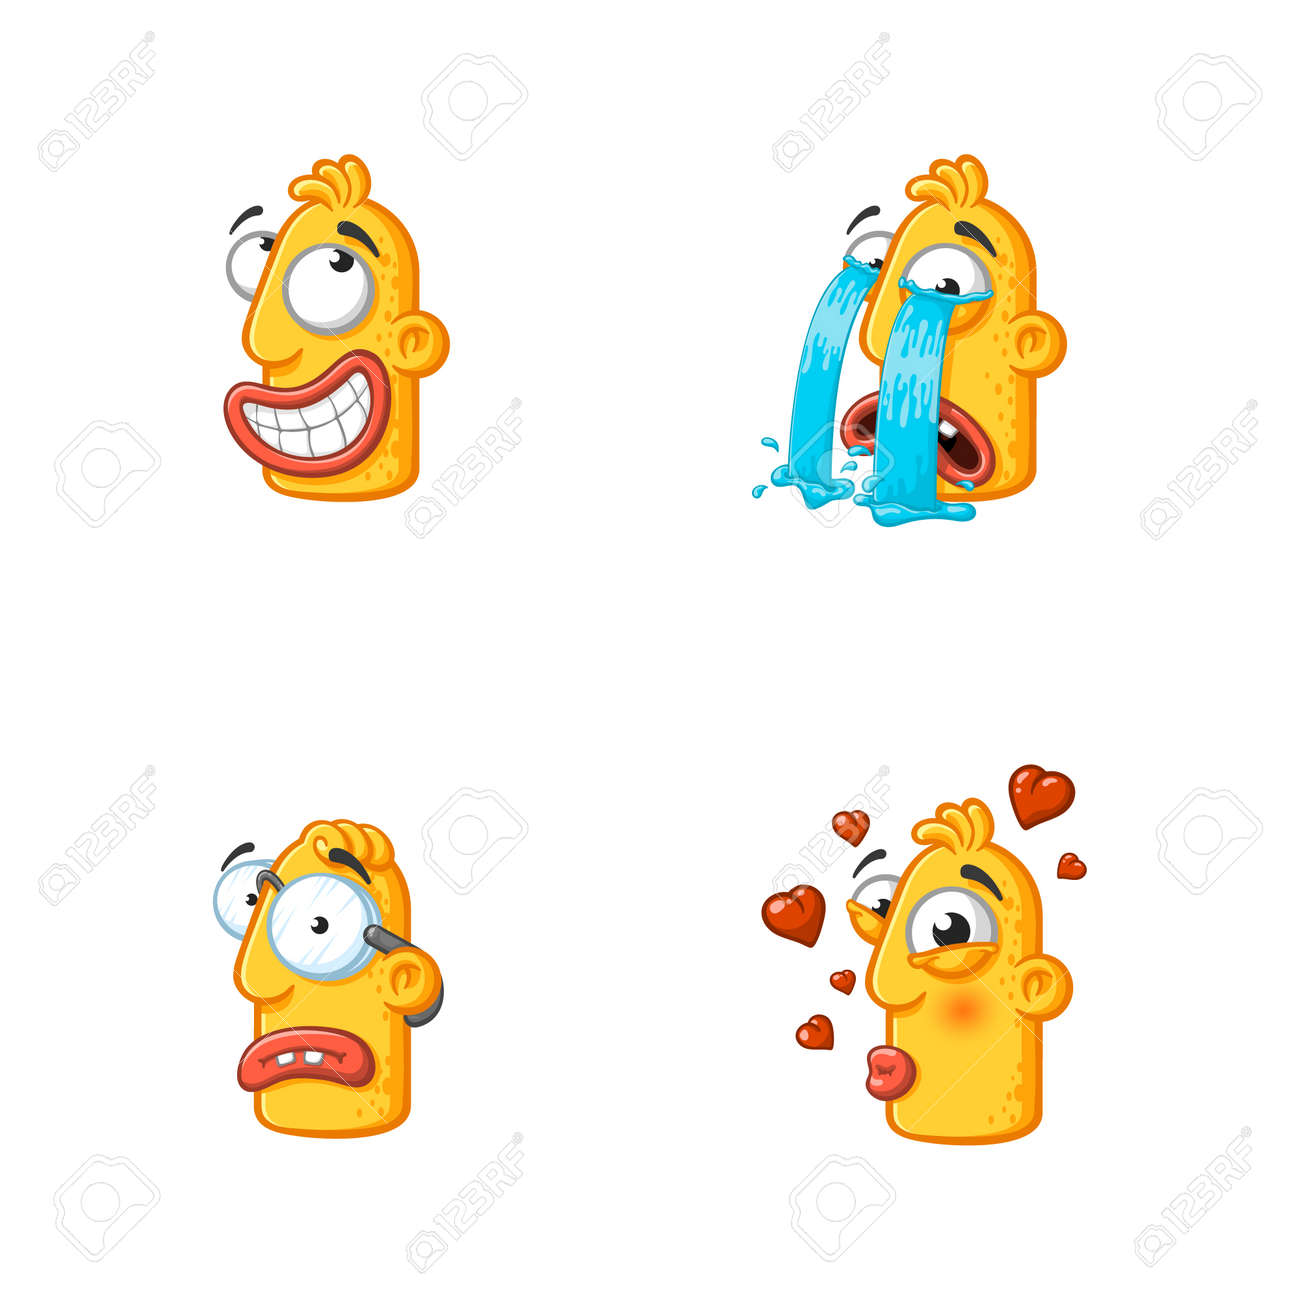 Set of special funny cartoon stickers character head, yellow color, with large lips and eyes in a vector on a white background. - 159029844